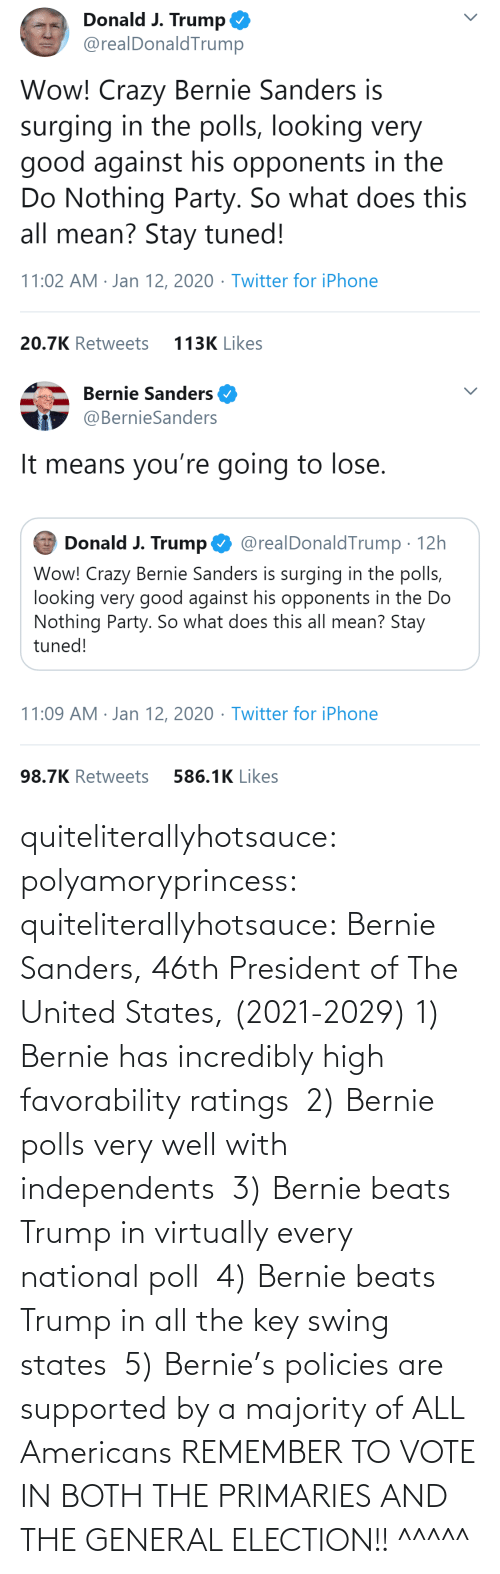 president: quiteliterallyhotsauce:  polyamoryprincess:  quiteliterallyhotsauce:   Bernie Sanders, 46th President of The United States, (2021-2029)    1) Bernie has incredibly high favorability ratings  2) Bernie polls very well with independents  3) Bernie beats Trump in virtually every national poll  4) Bernie beats Trump in all the key swing states  5) Bernie's policies are supported by a majority of ALL Americans    REMEMBER TO VOTE IN BOTH THE PRIMARIES AND THE GENERAL ELECTION!!  ^^^^^